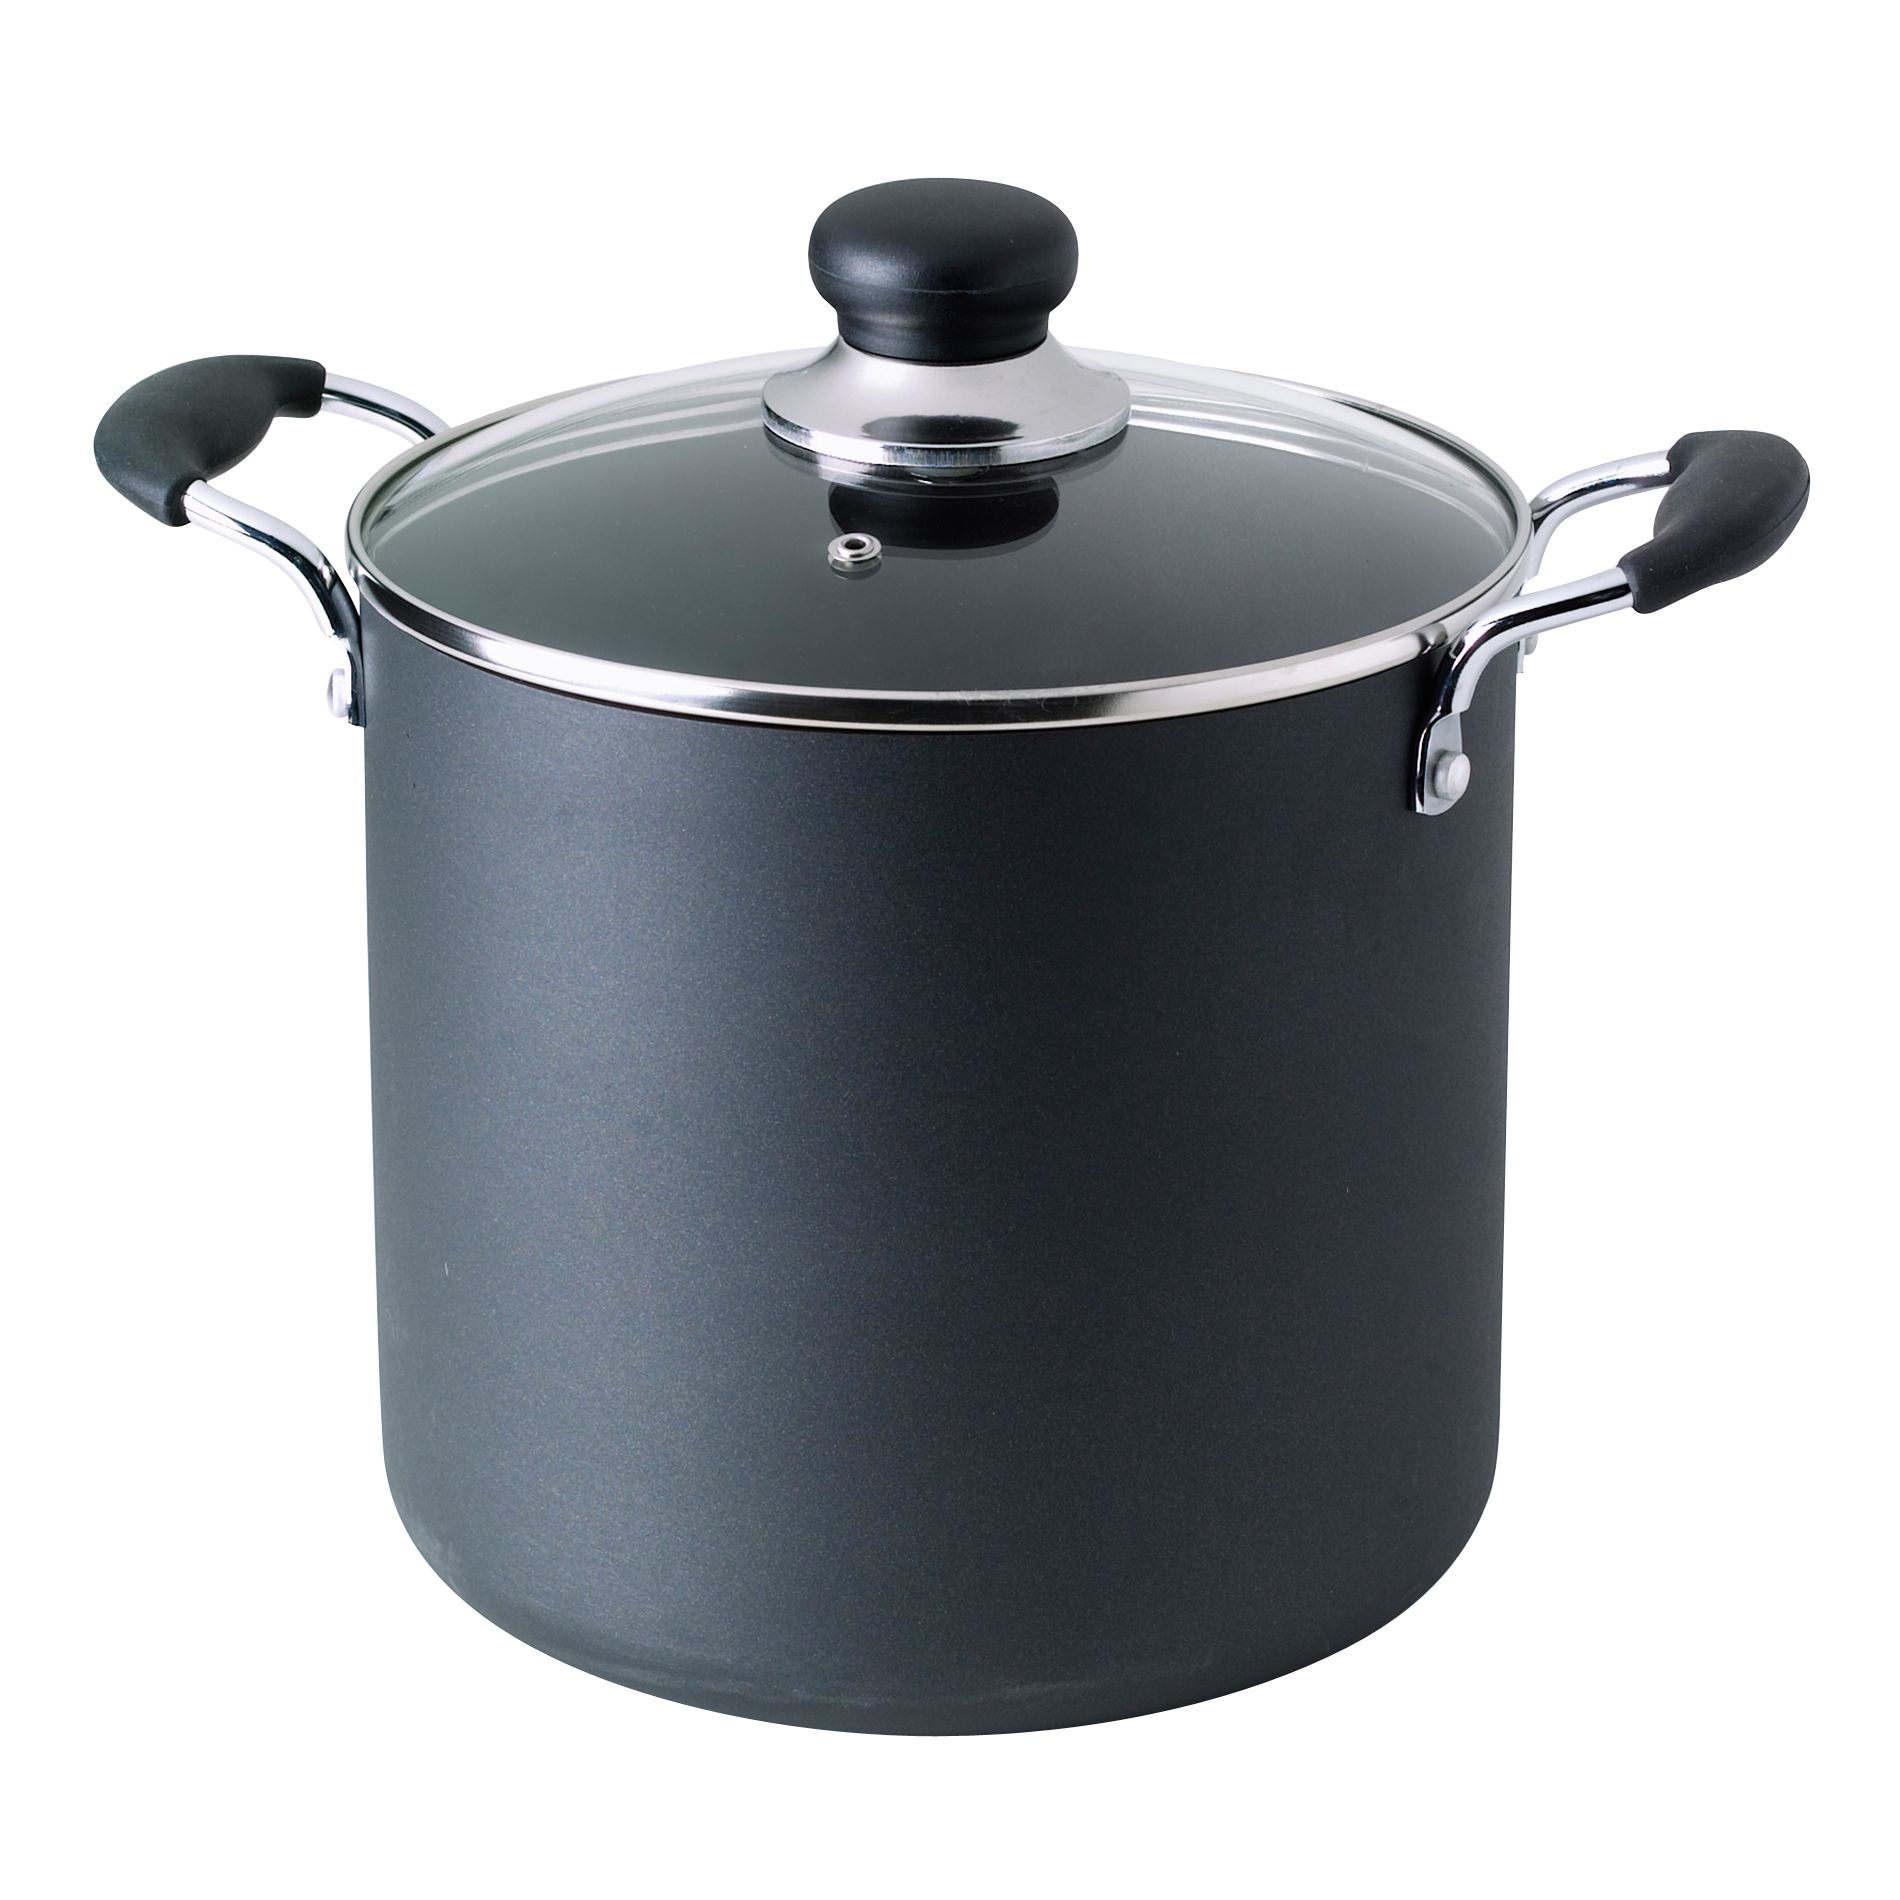 T-fal  Non Stick Stock Pot Black 8 Quart